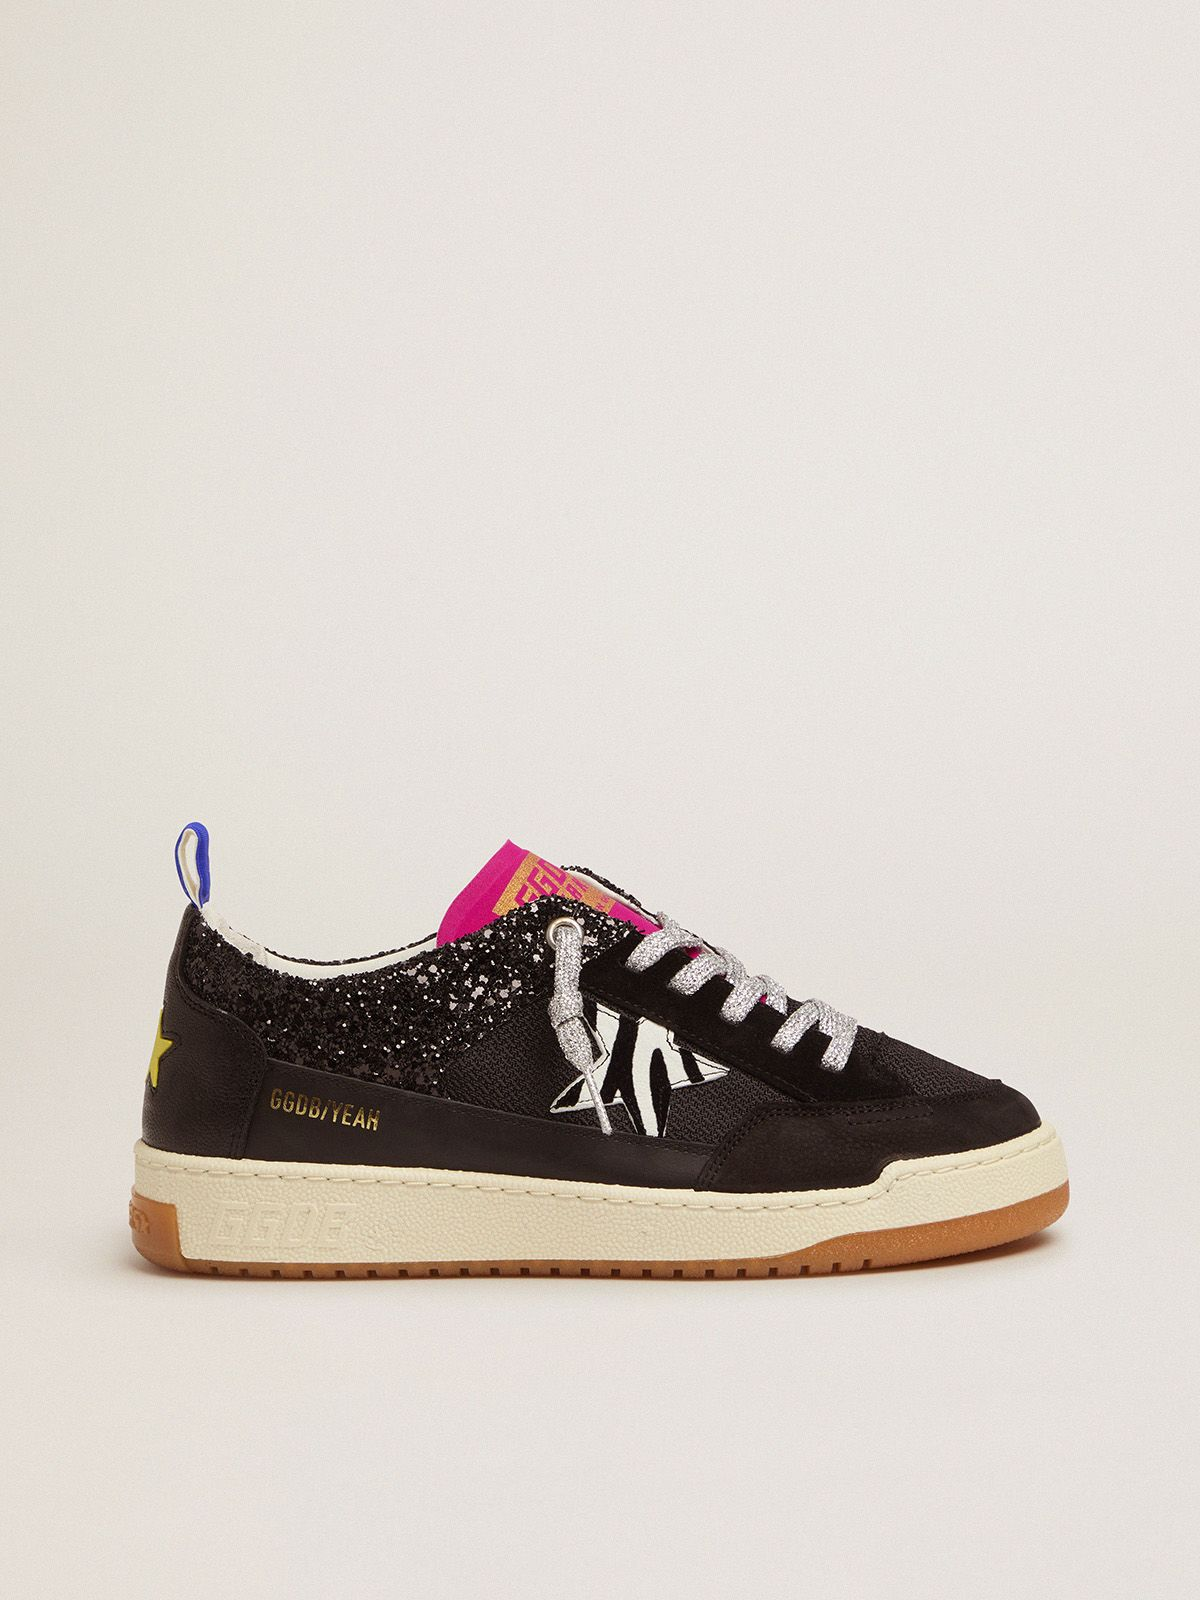 Women's black Yeah sneakers with glitter and zebra-print star